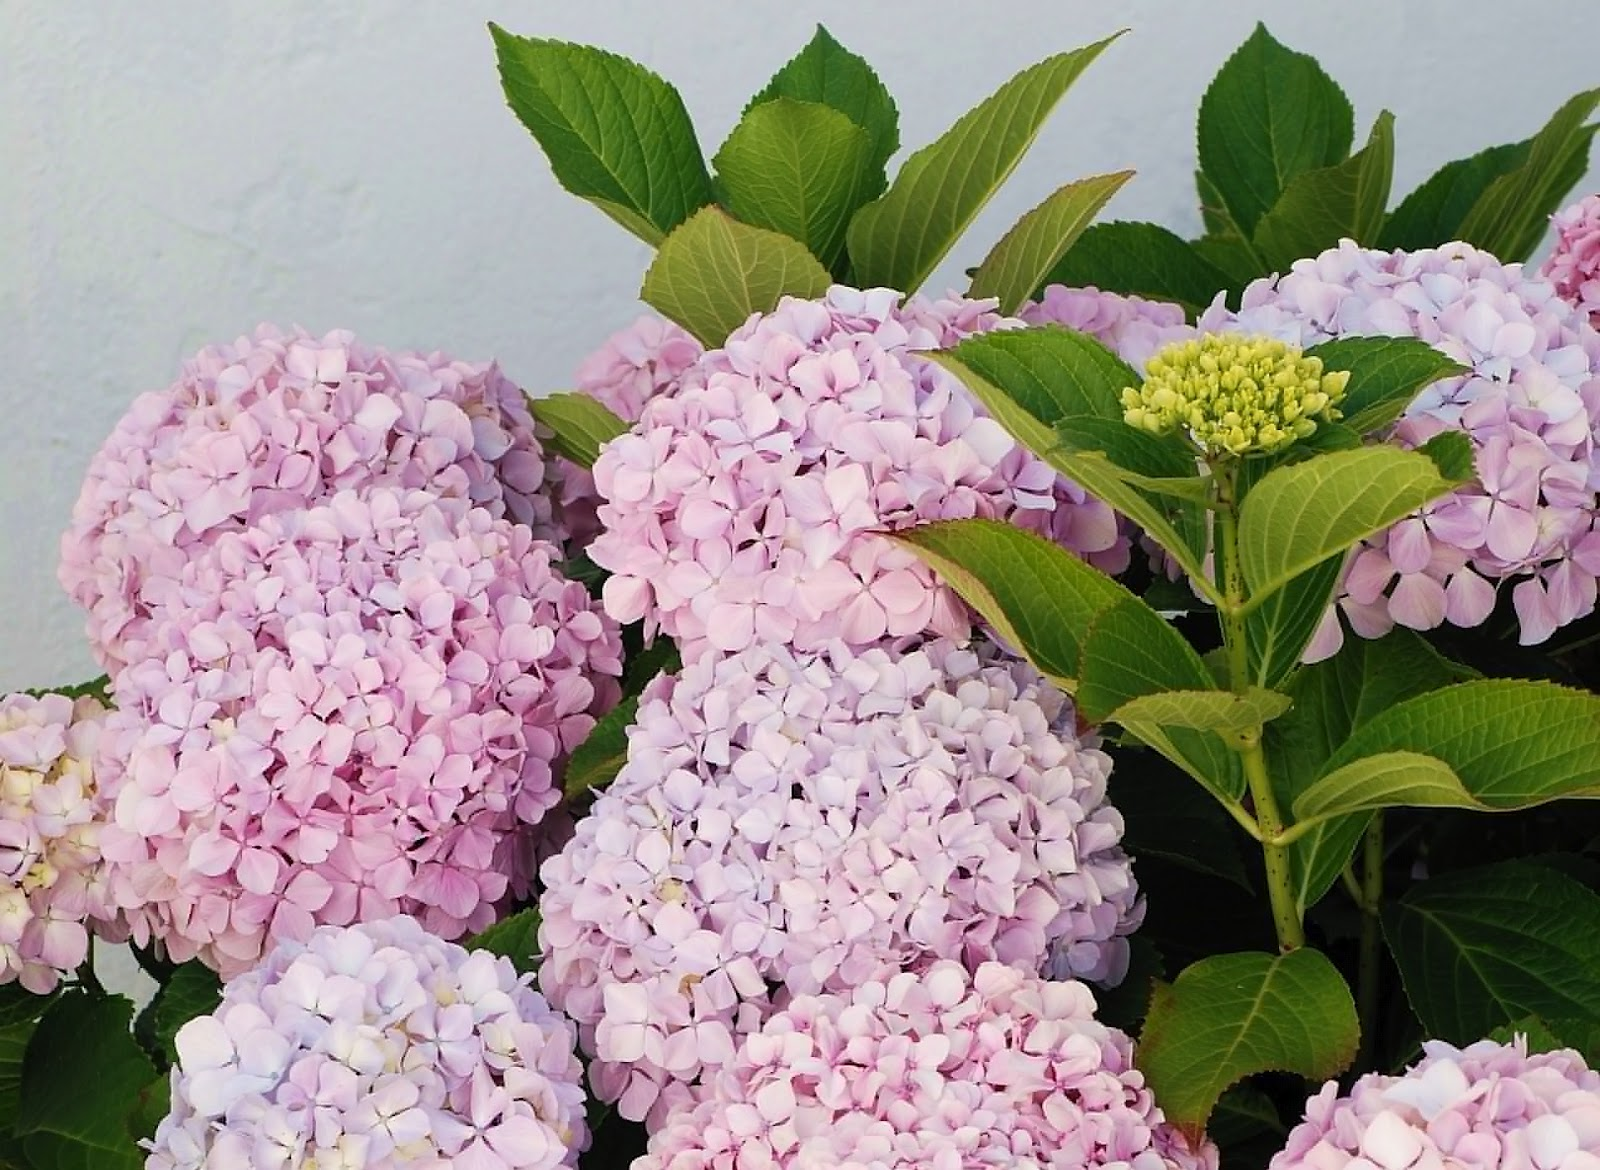 Hydrangea popular ornamental plants kinds of for Ornamental garden plants